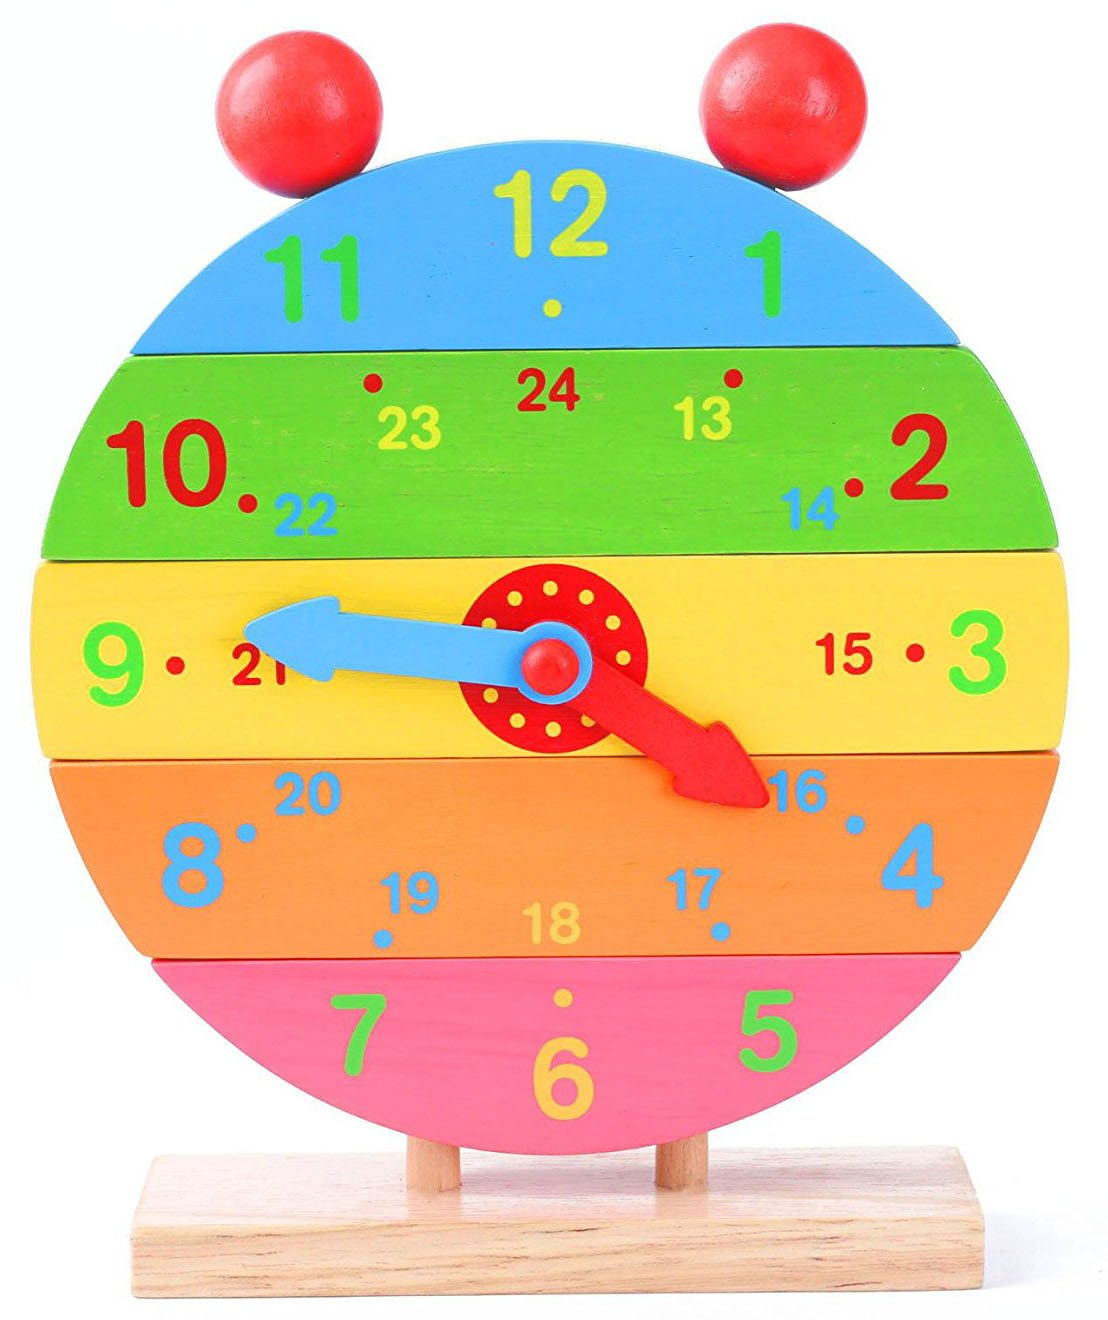 Babe Rock Wooden Clock Toys - Kid's Teaching Clock Educational Time Learning Puzzle Clock for 2 Years Old